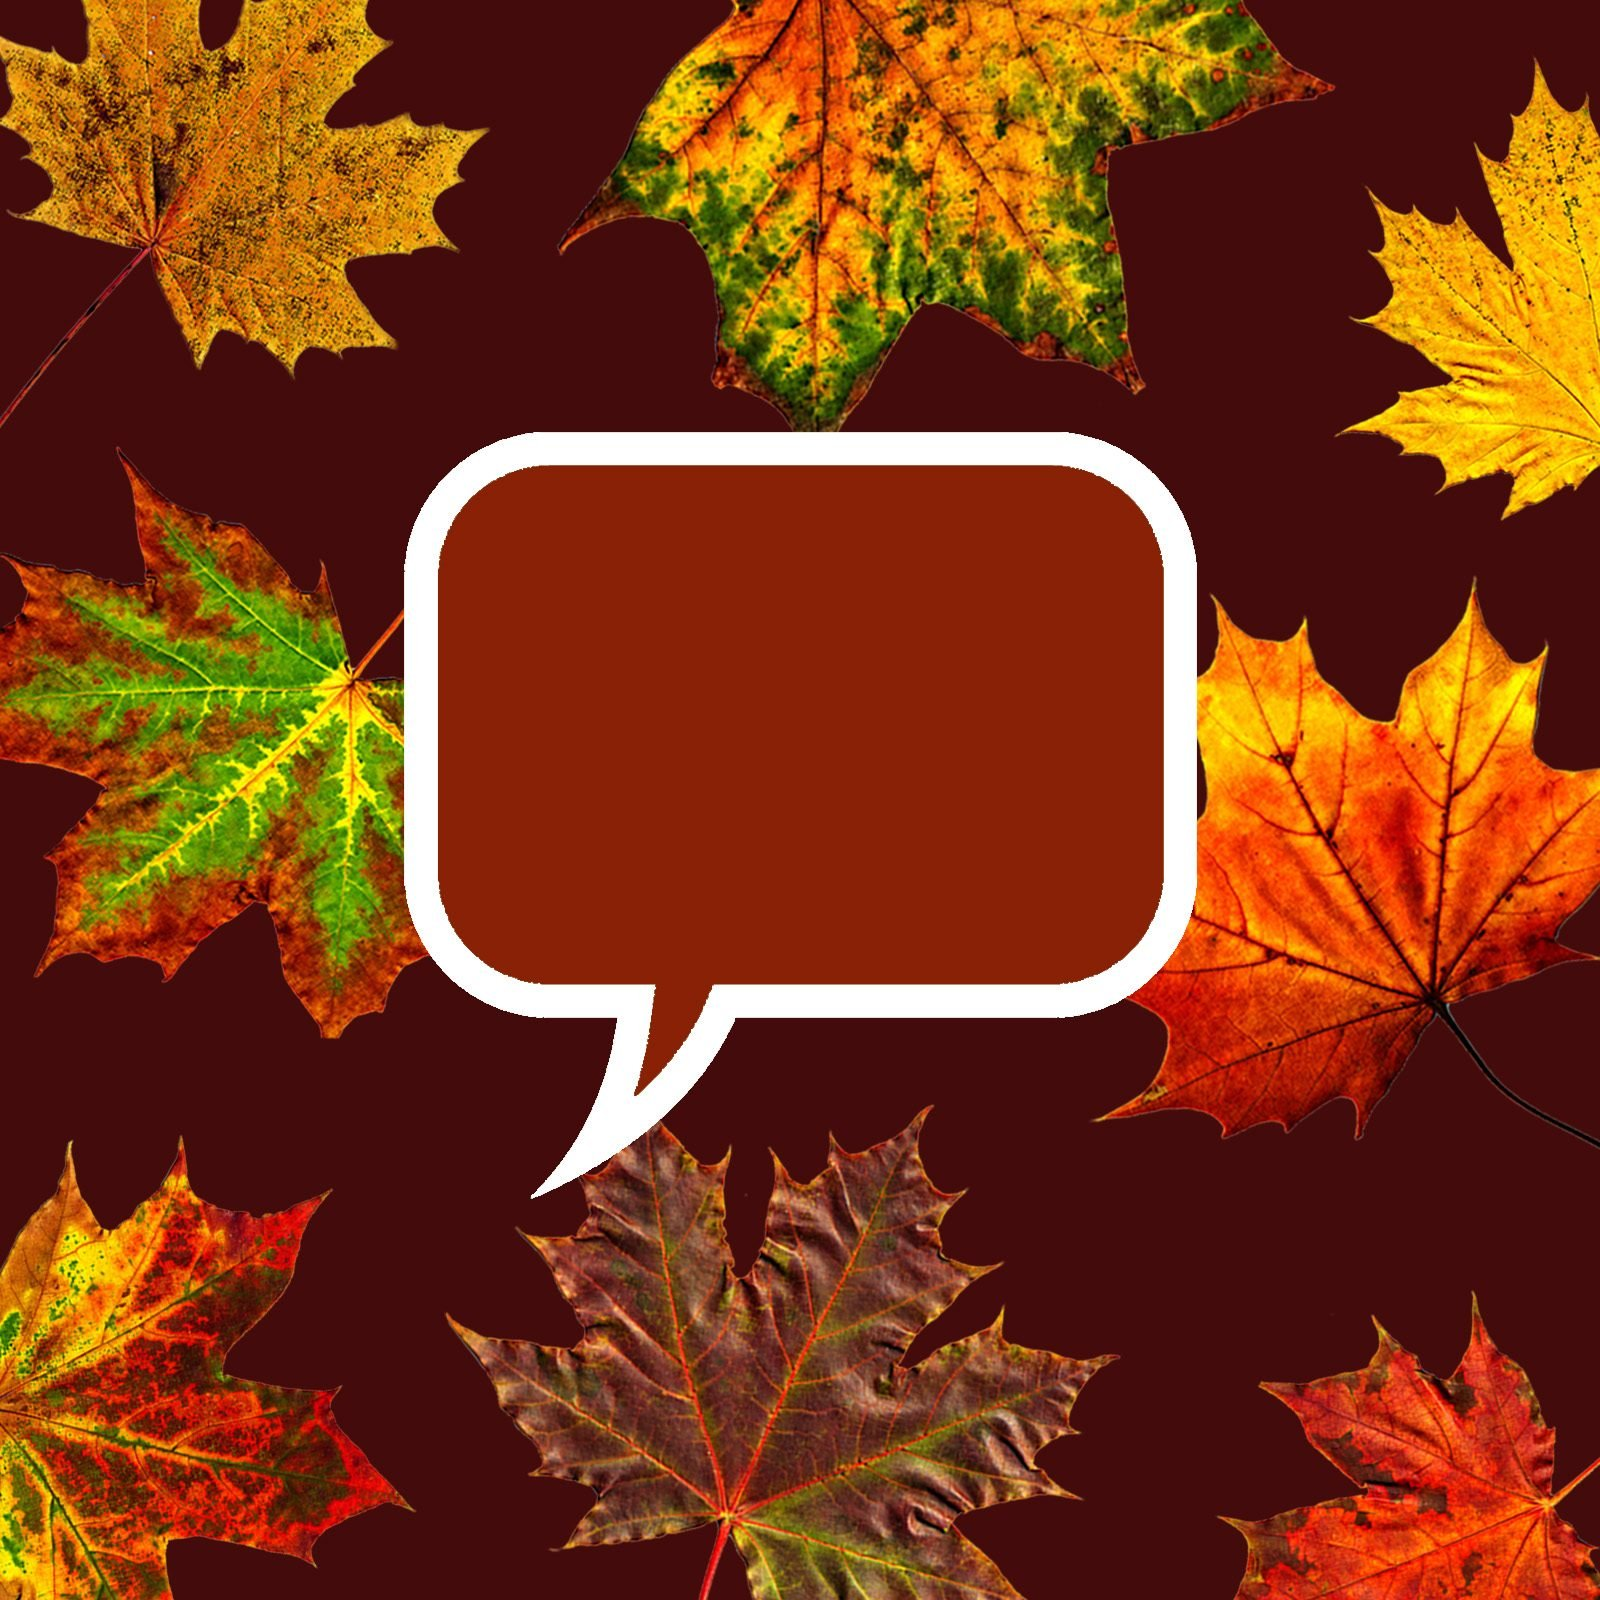 50 Colorful Fall Quotes That Capture the Beauty of the Season